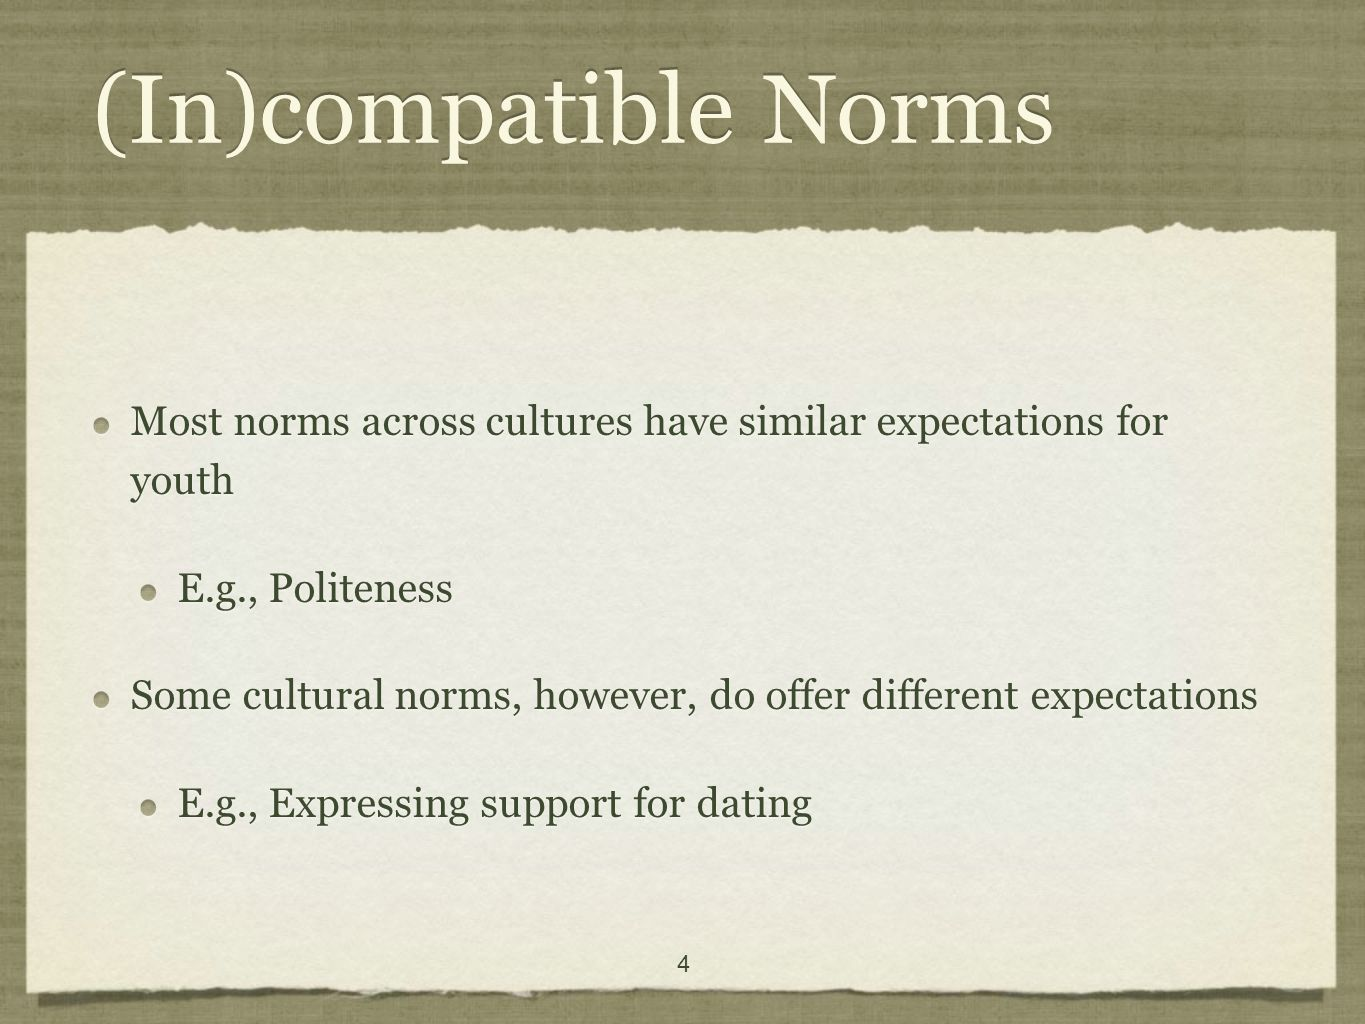 4 (In)compatible Norms Most norms across cultures have similar expectations for youth E.g., Politeness Some cultural norms, however, do offer different expectations E.g., Expressing support for dating Most norms across cultures have similar expectations for youth E.g., Politeness Some cultural norms, however, do offer different expectations E.g., Expressing support for dating